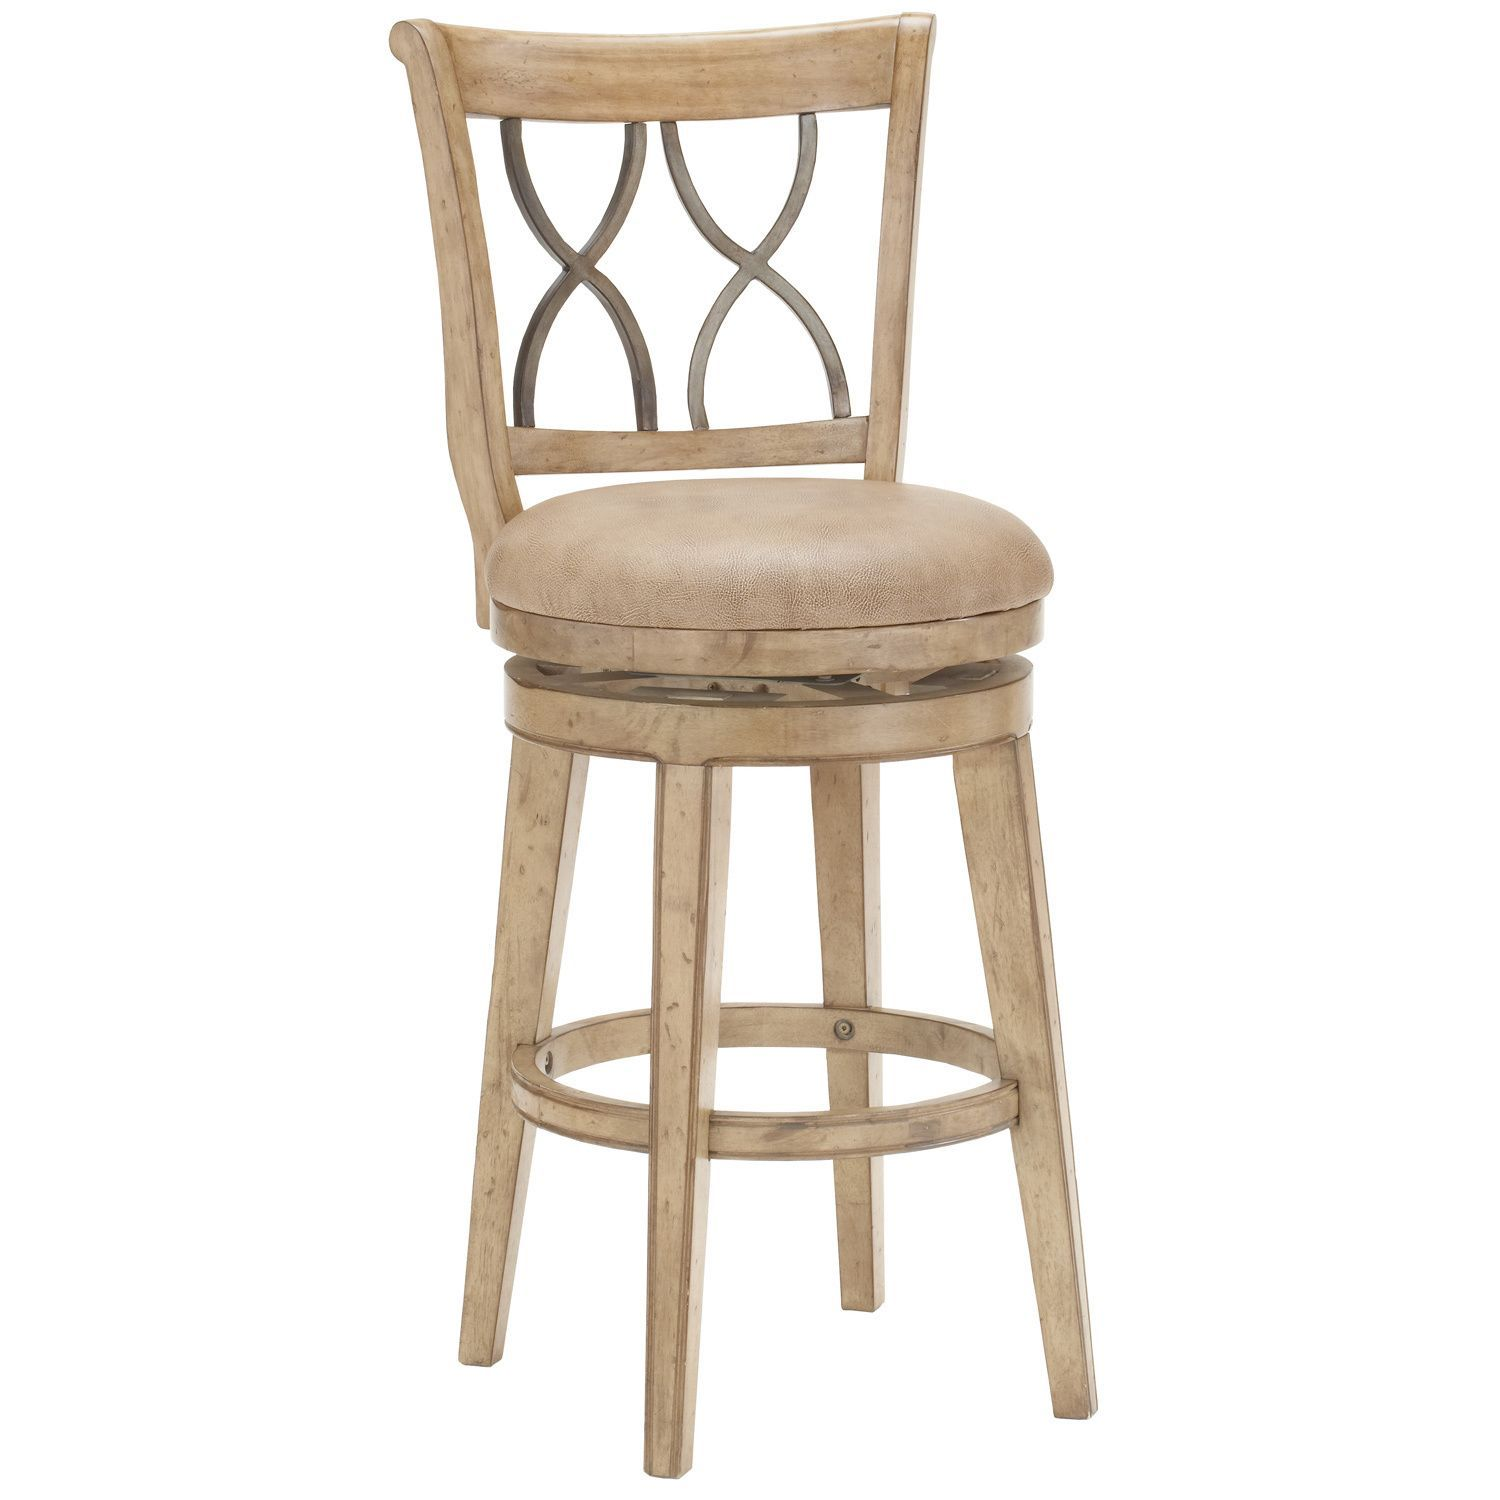 the reydon stool is truly unique with a touch of rustic charm a